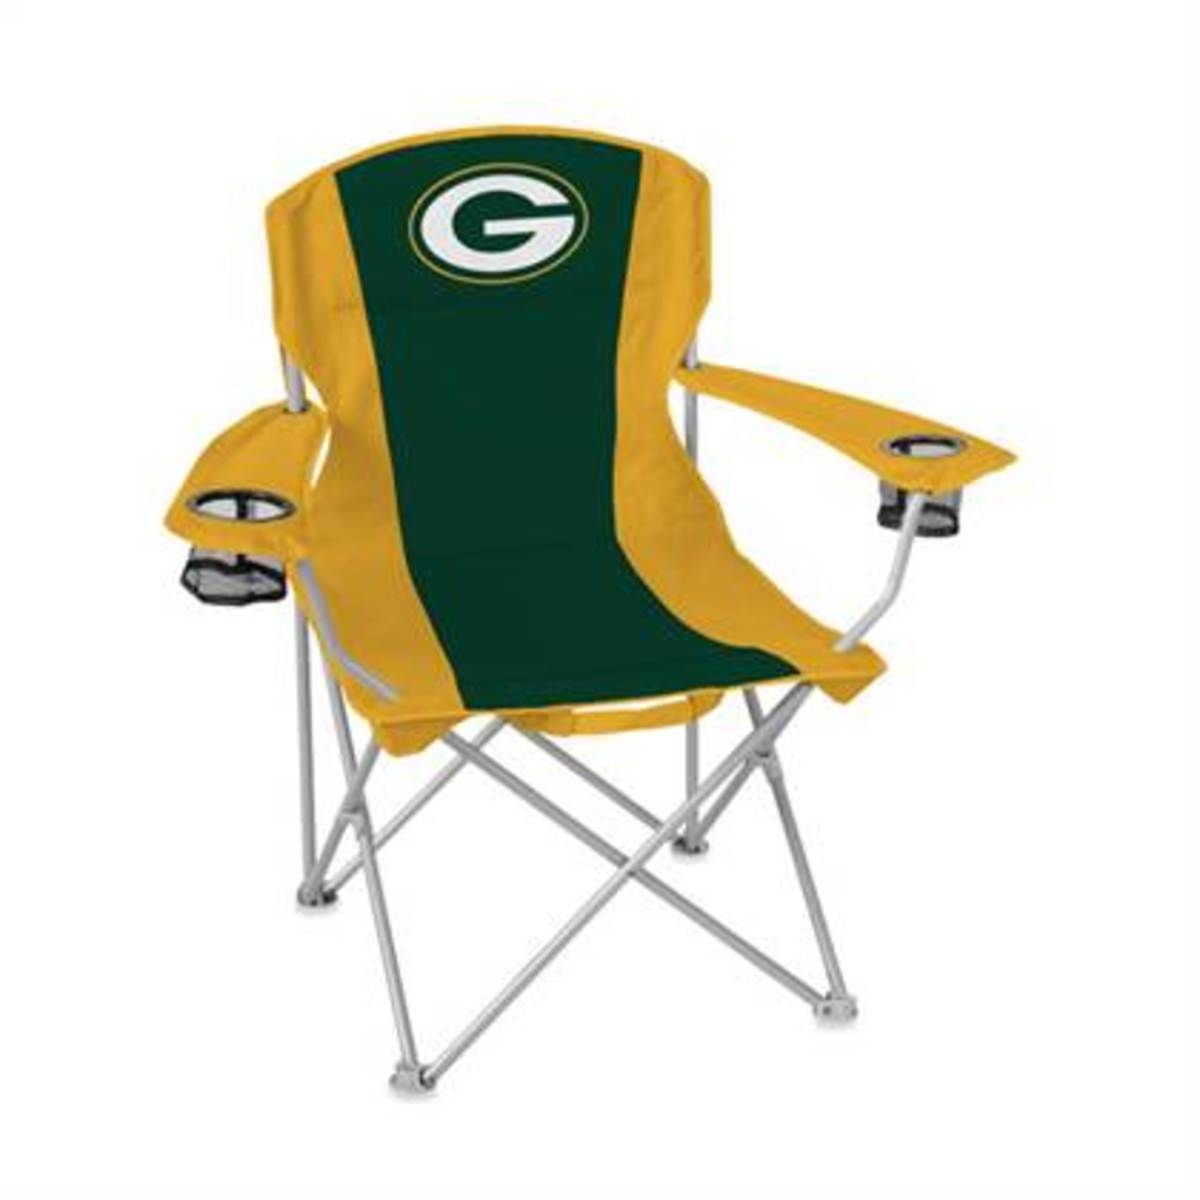 Football Fan Gift Idea - Quad Chair or Lawn Chair with Team logo - Green Bay Packers Example Football Fan Gift Idea with Team logo - Green Bay Packers Example